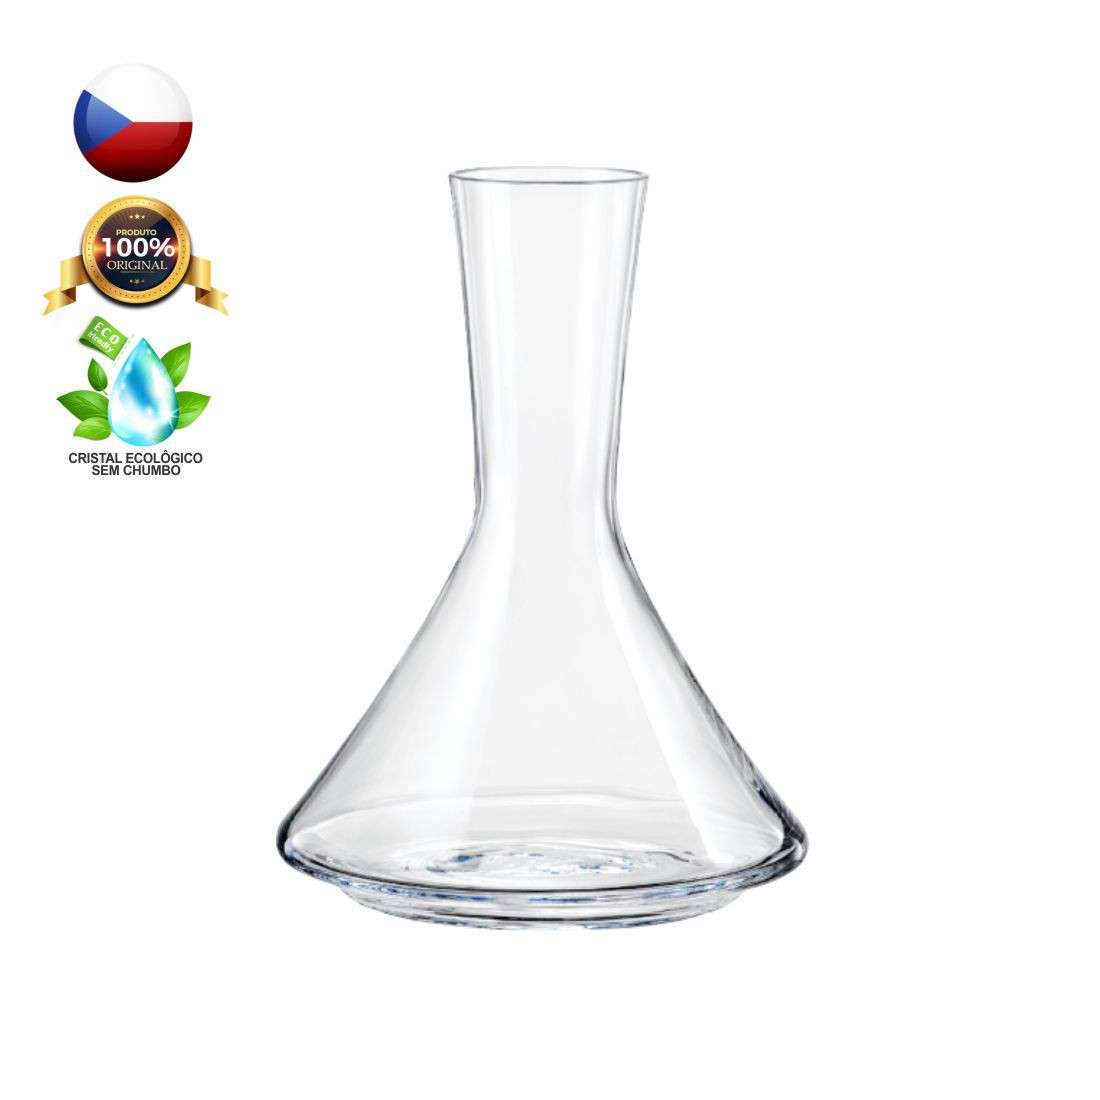 DECANTER XTRA CRISTAL BOHEMIA 1400 ML